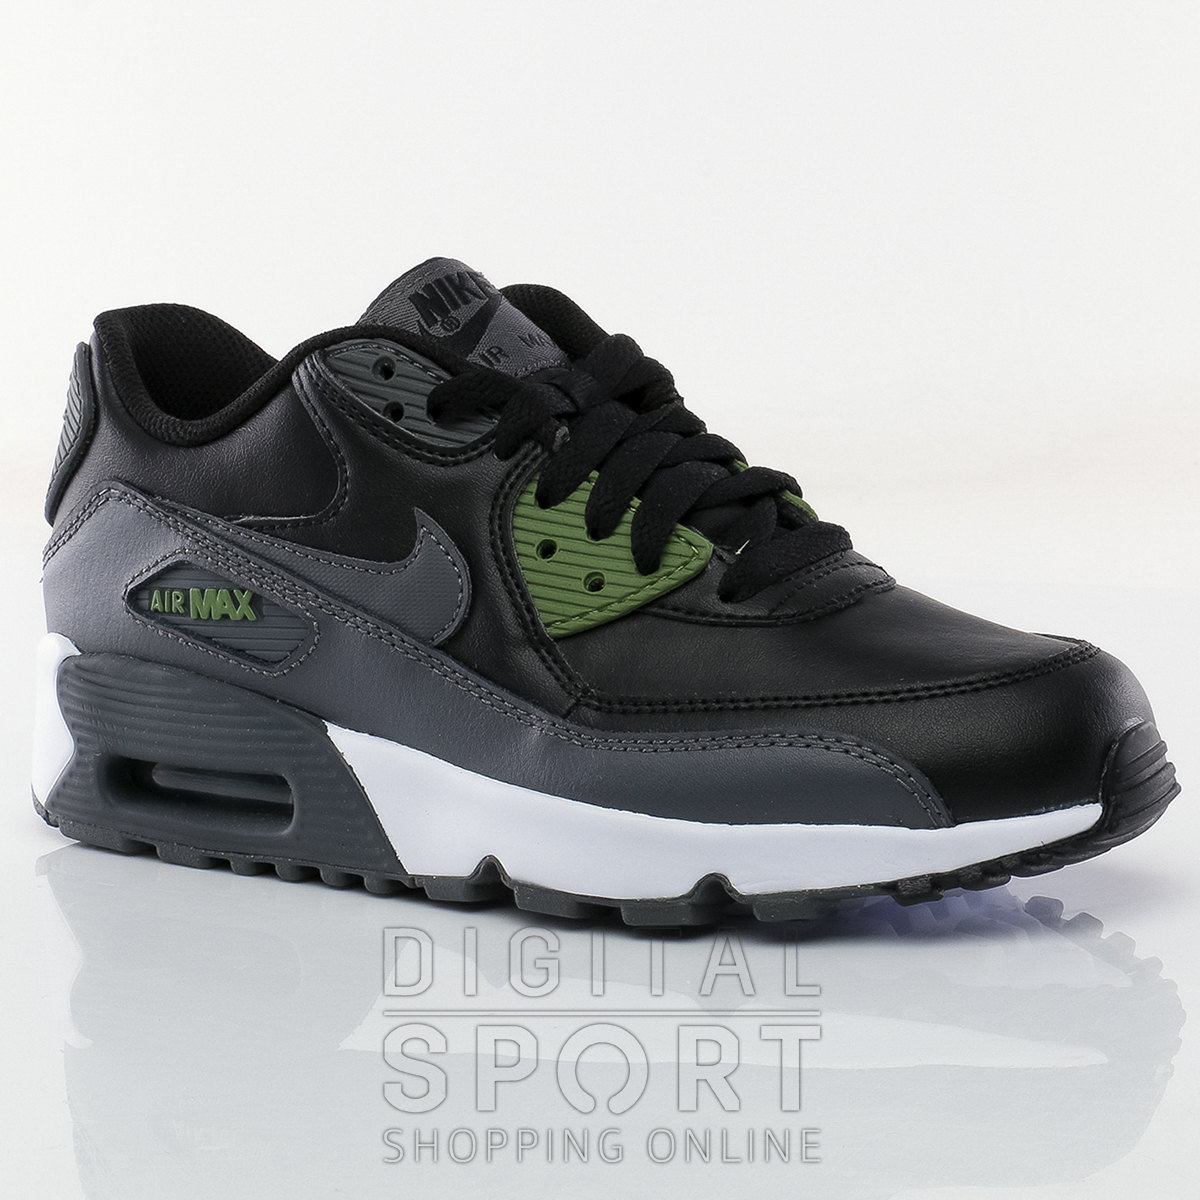 8bdf61054fe ZAPATILLAS AIR MAX 90 LEATHER EN ZAPATILLAS NIKE PARA NIÑO / NIÑA DE MODA